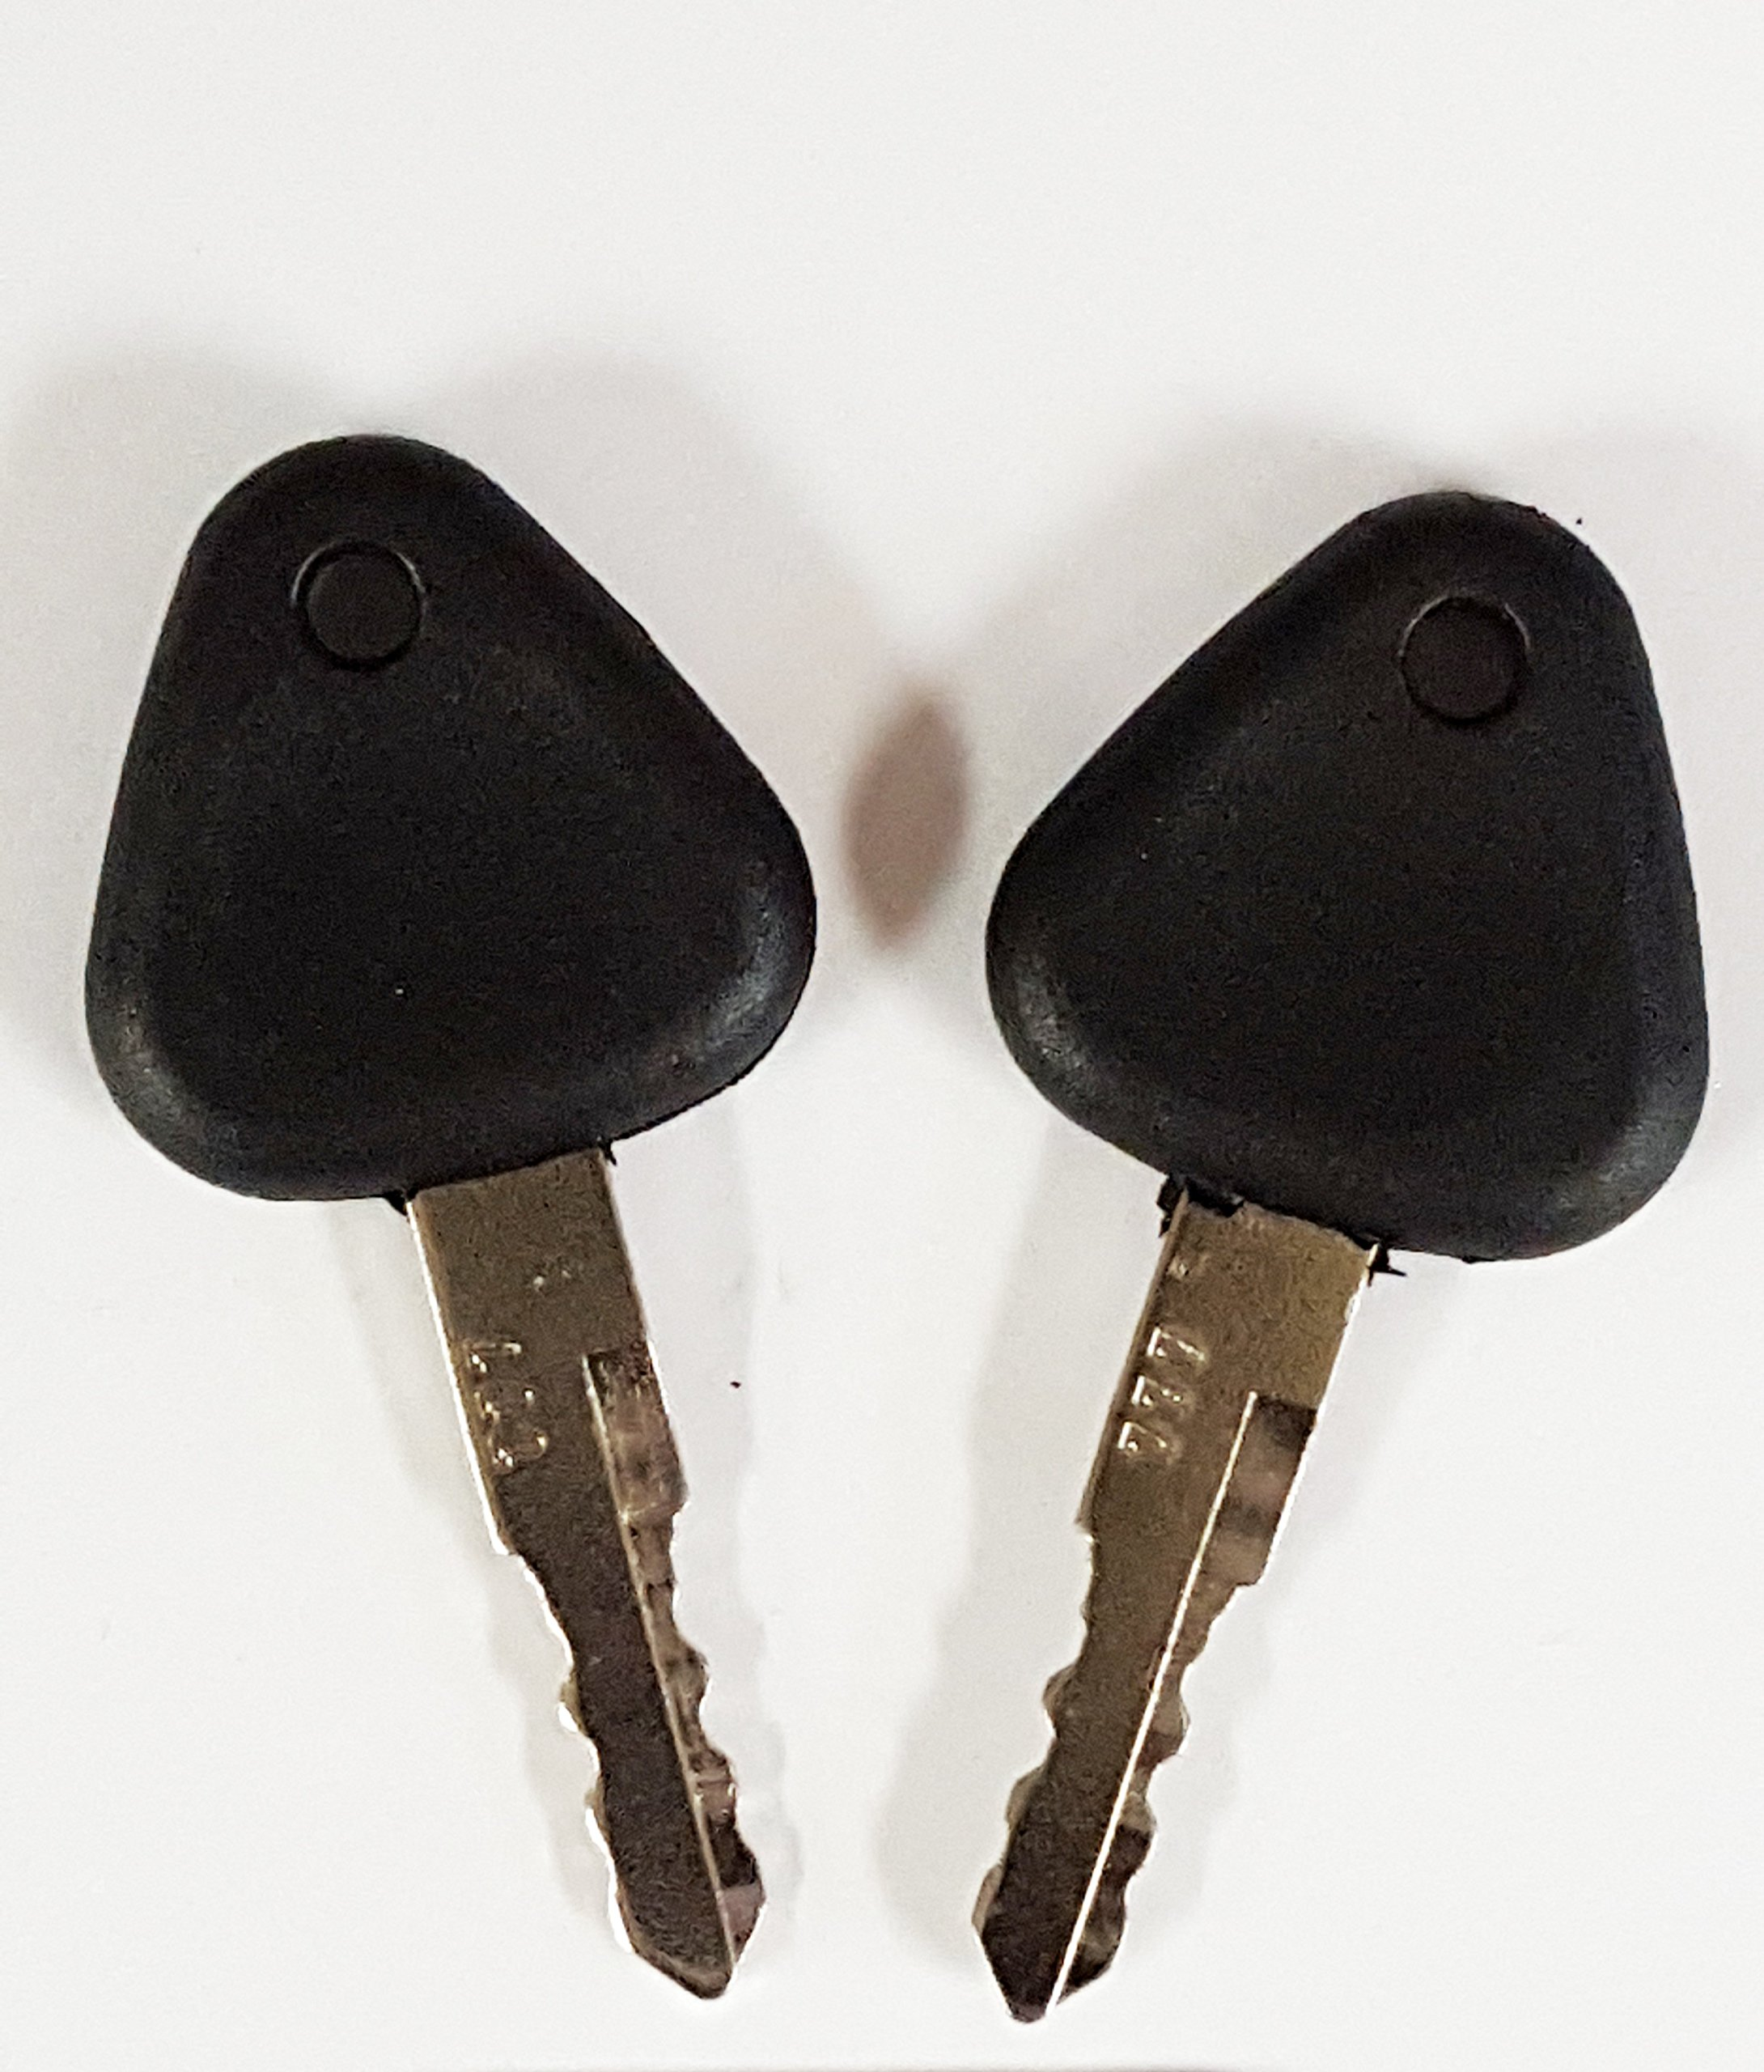 Galleon - 2 Keys Keyman Volvo Excavator Keys-1 Pair-Ignition Key For